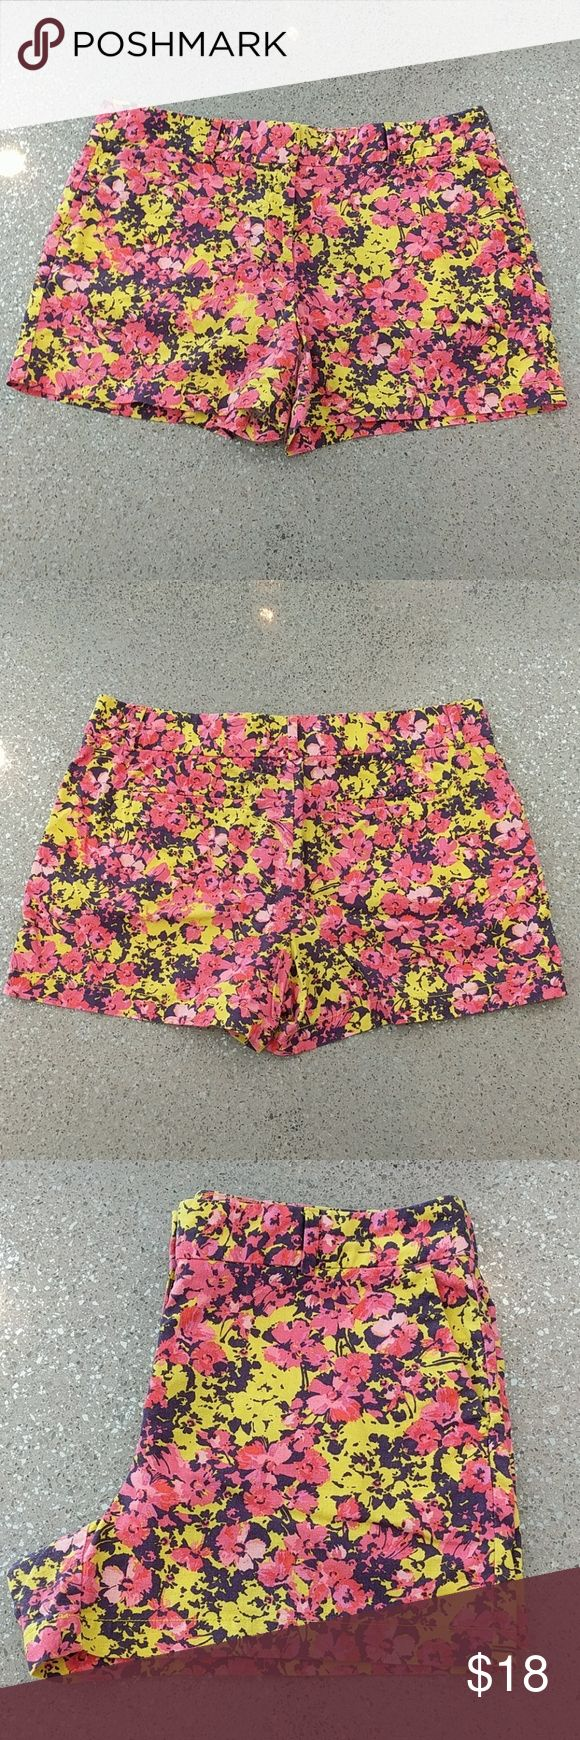 """Ann Taylor LOFT women's floral shorts size 12 Ann Taylor LOFT women's shorts - pattern is bright floral with yellow, purple, pink, salmon and orange. Has a wonderful soft linen feel, fabric is 55% linen, 45% cotton. size12. Side seam measures 14"""" long. Waist is 18.5"""" across. Gently worn, impeccably cared for... LOFT Shorts Bermudas"""